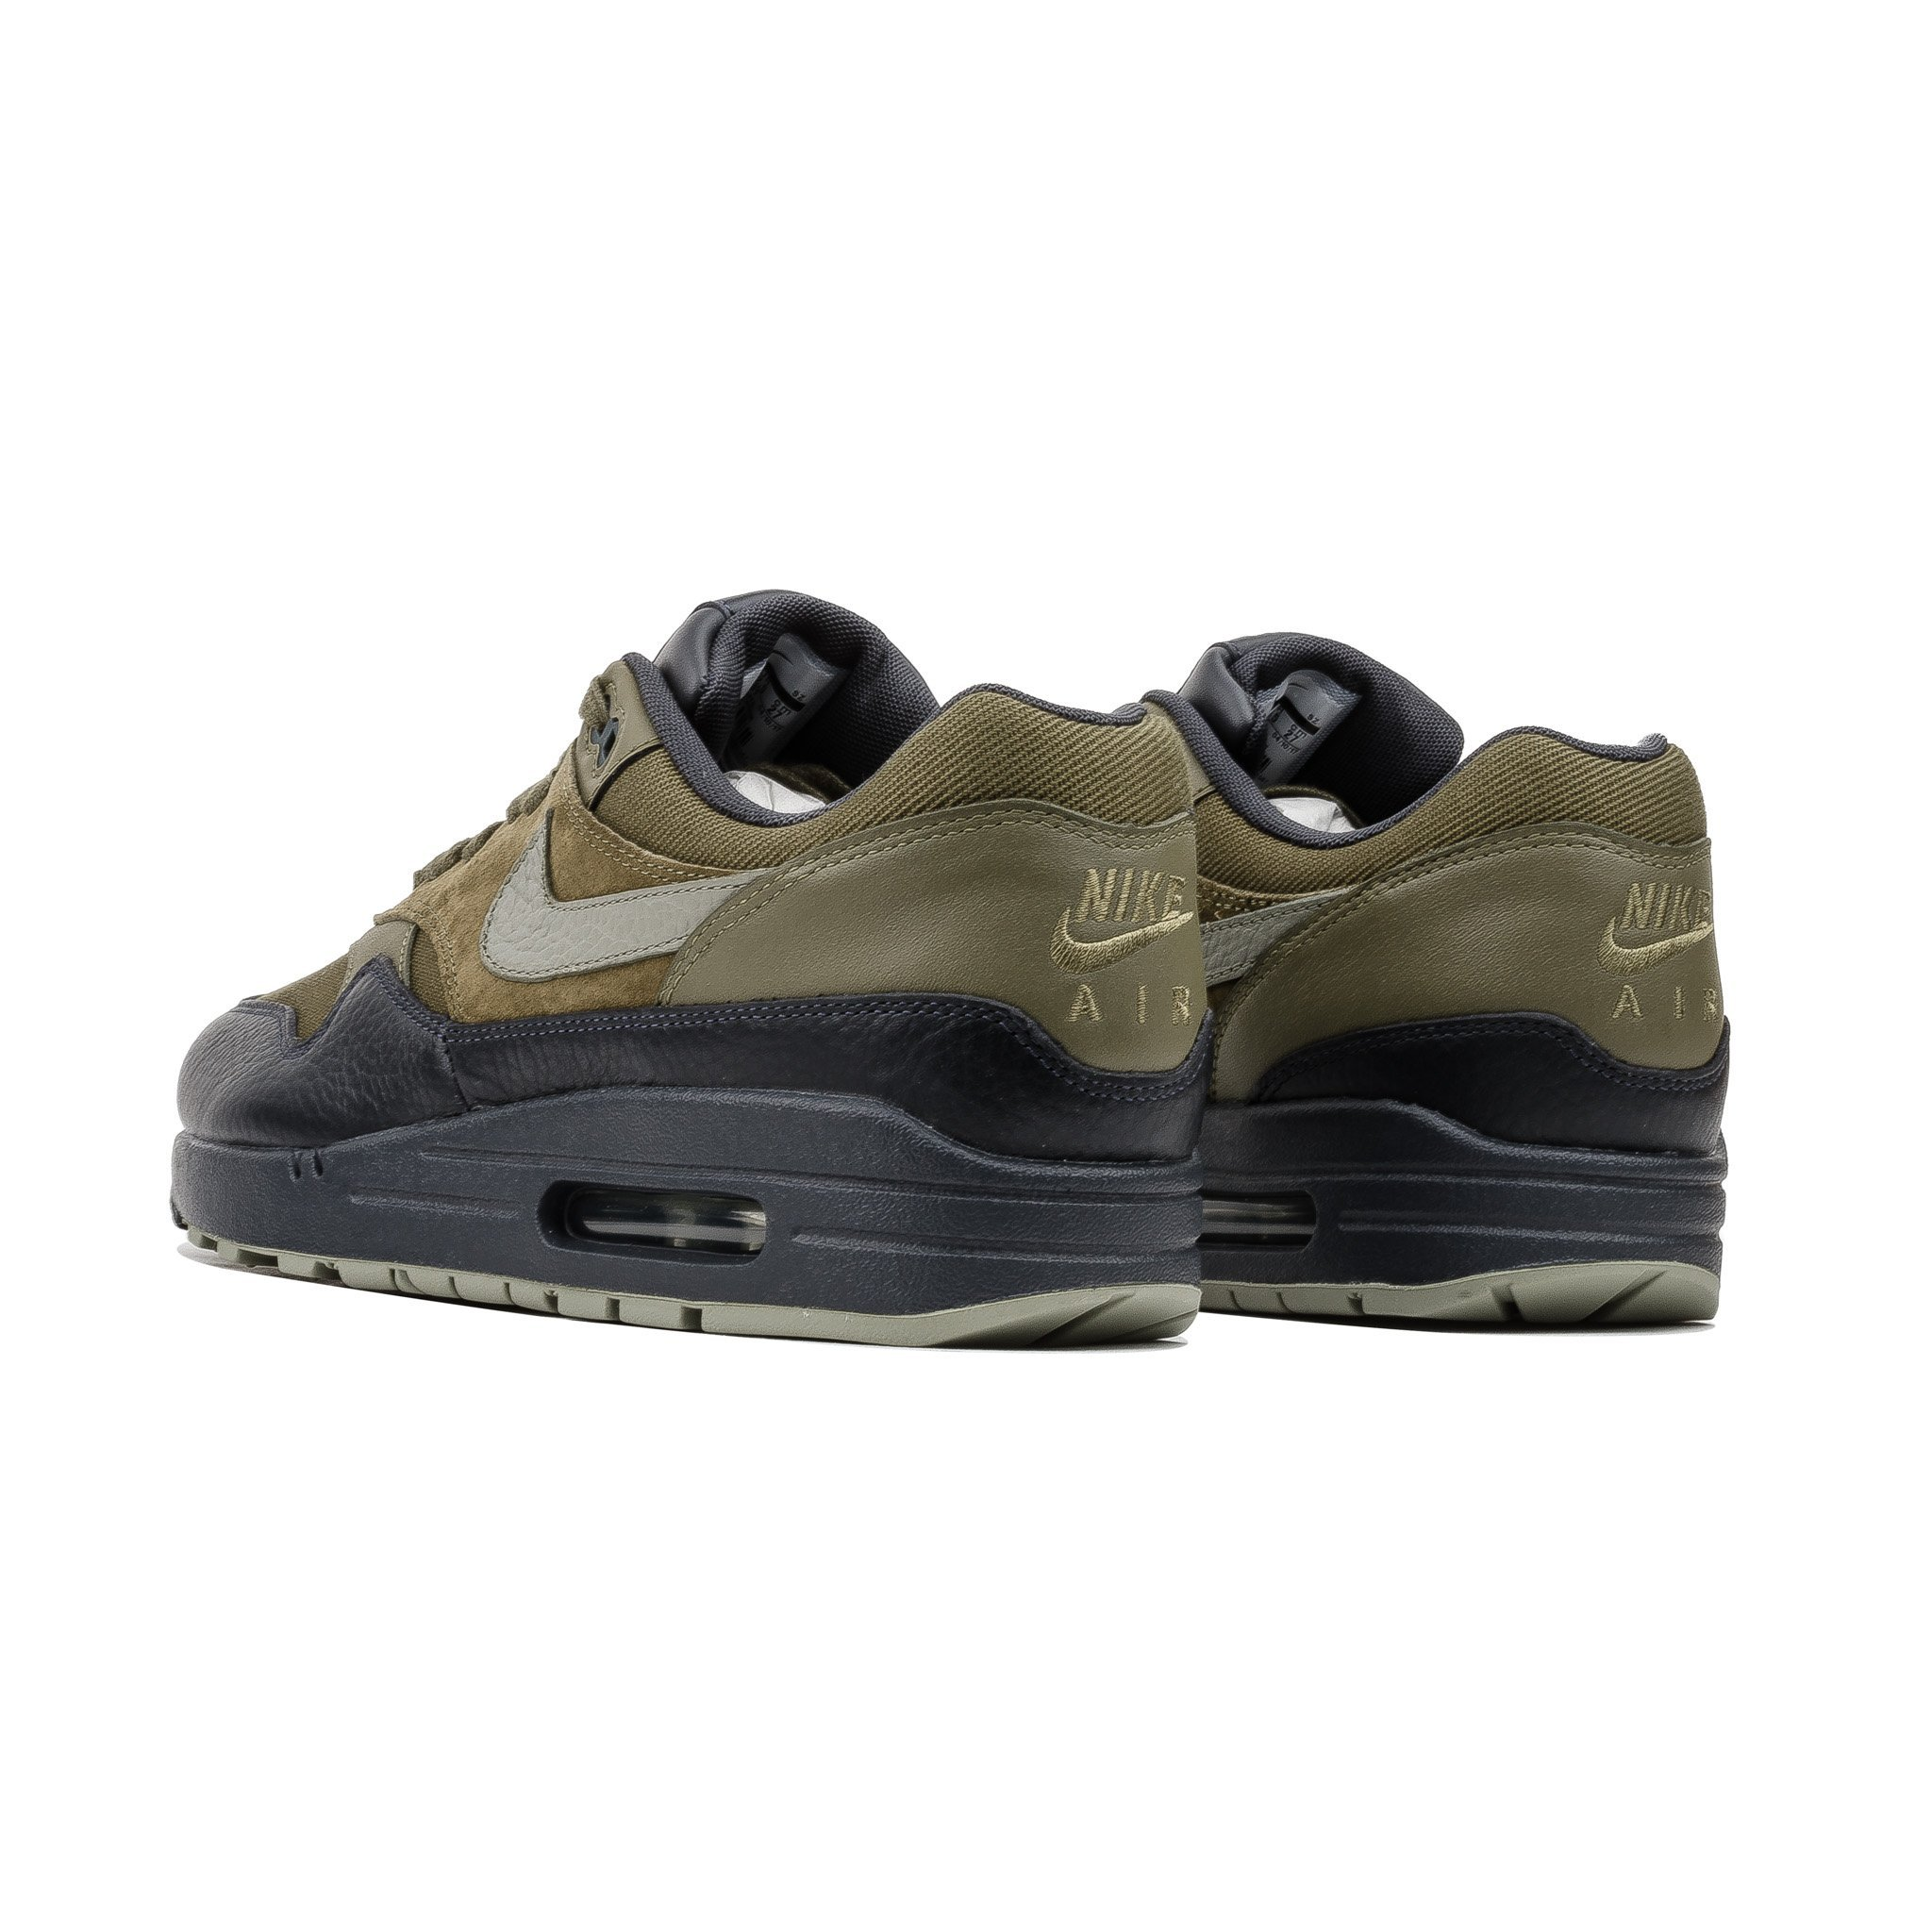 innovative design c7f8e a04f8 ... buty Nike Air Max 1 Premium Medium Olive 875844 201 ...